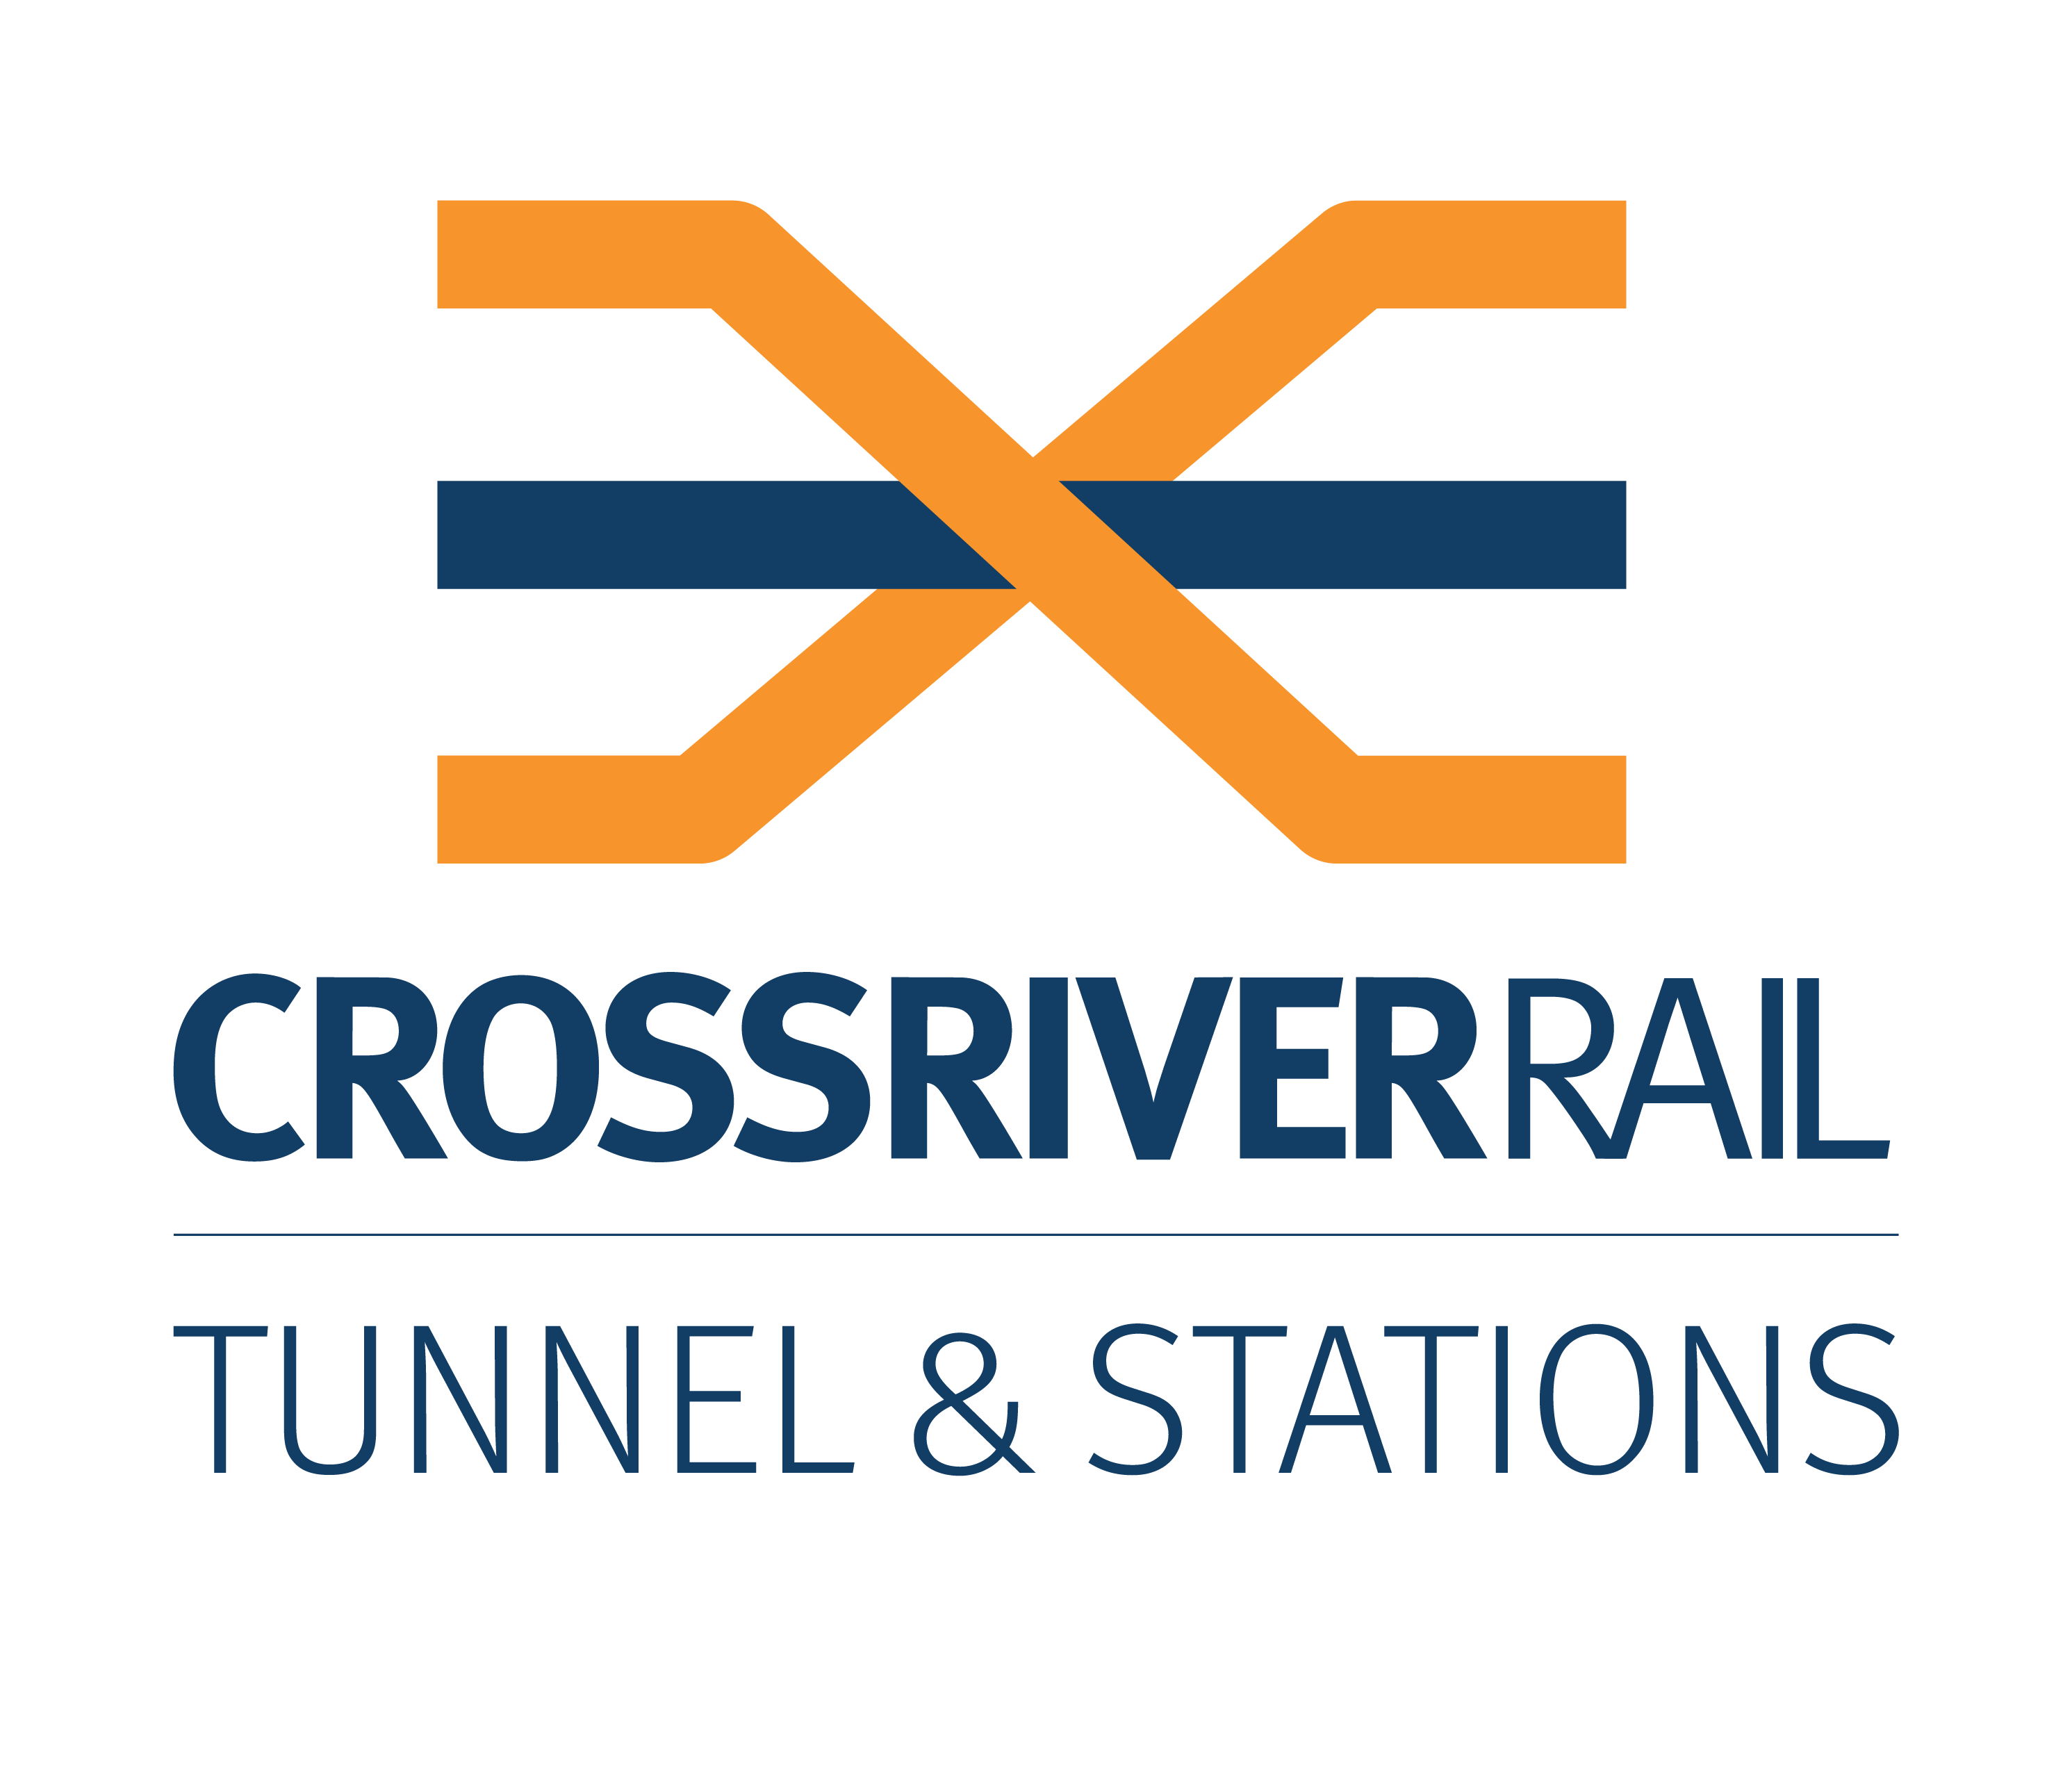 Cross River Rail